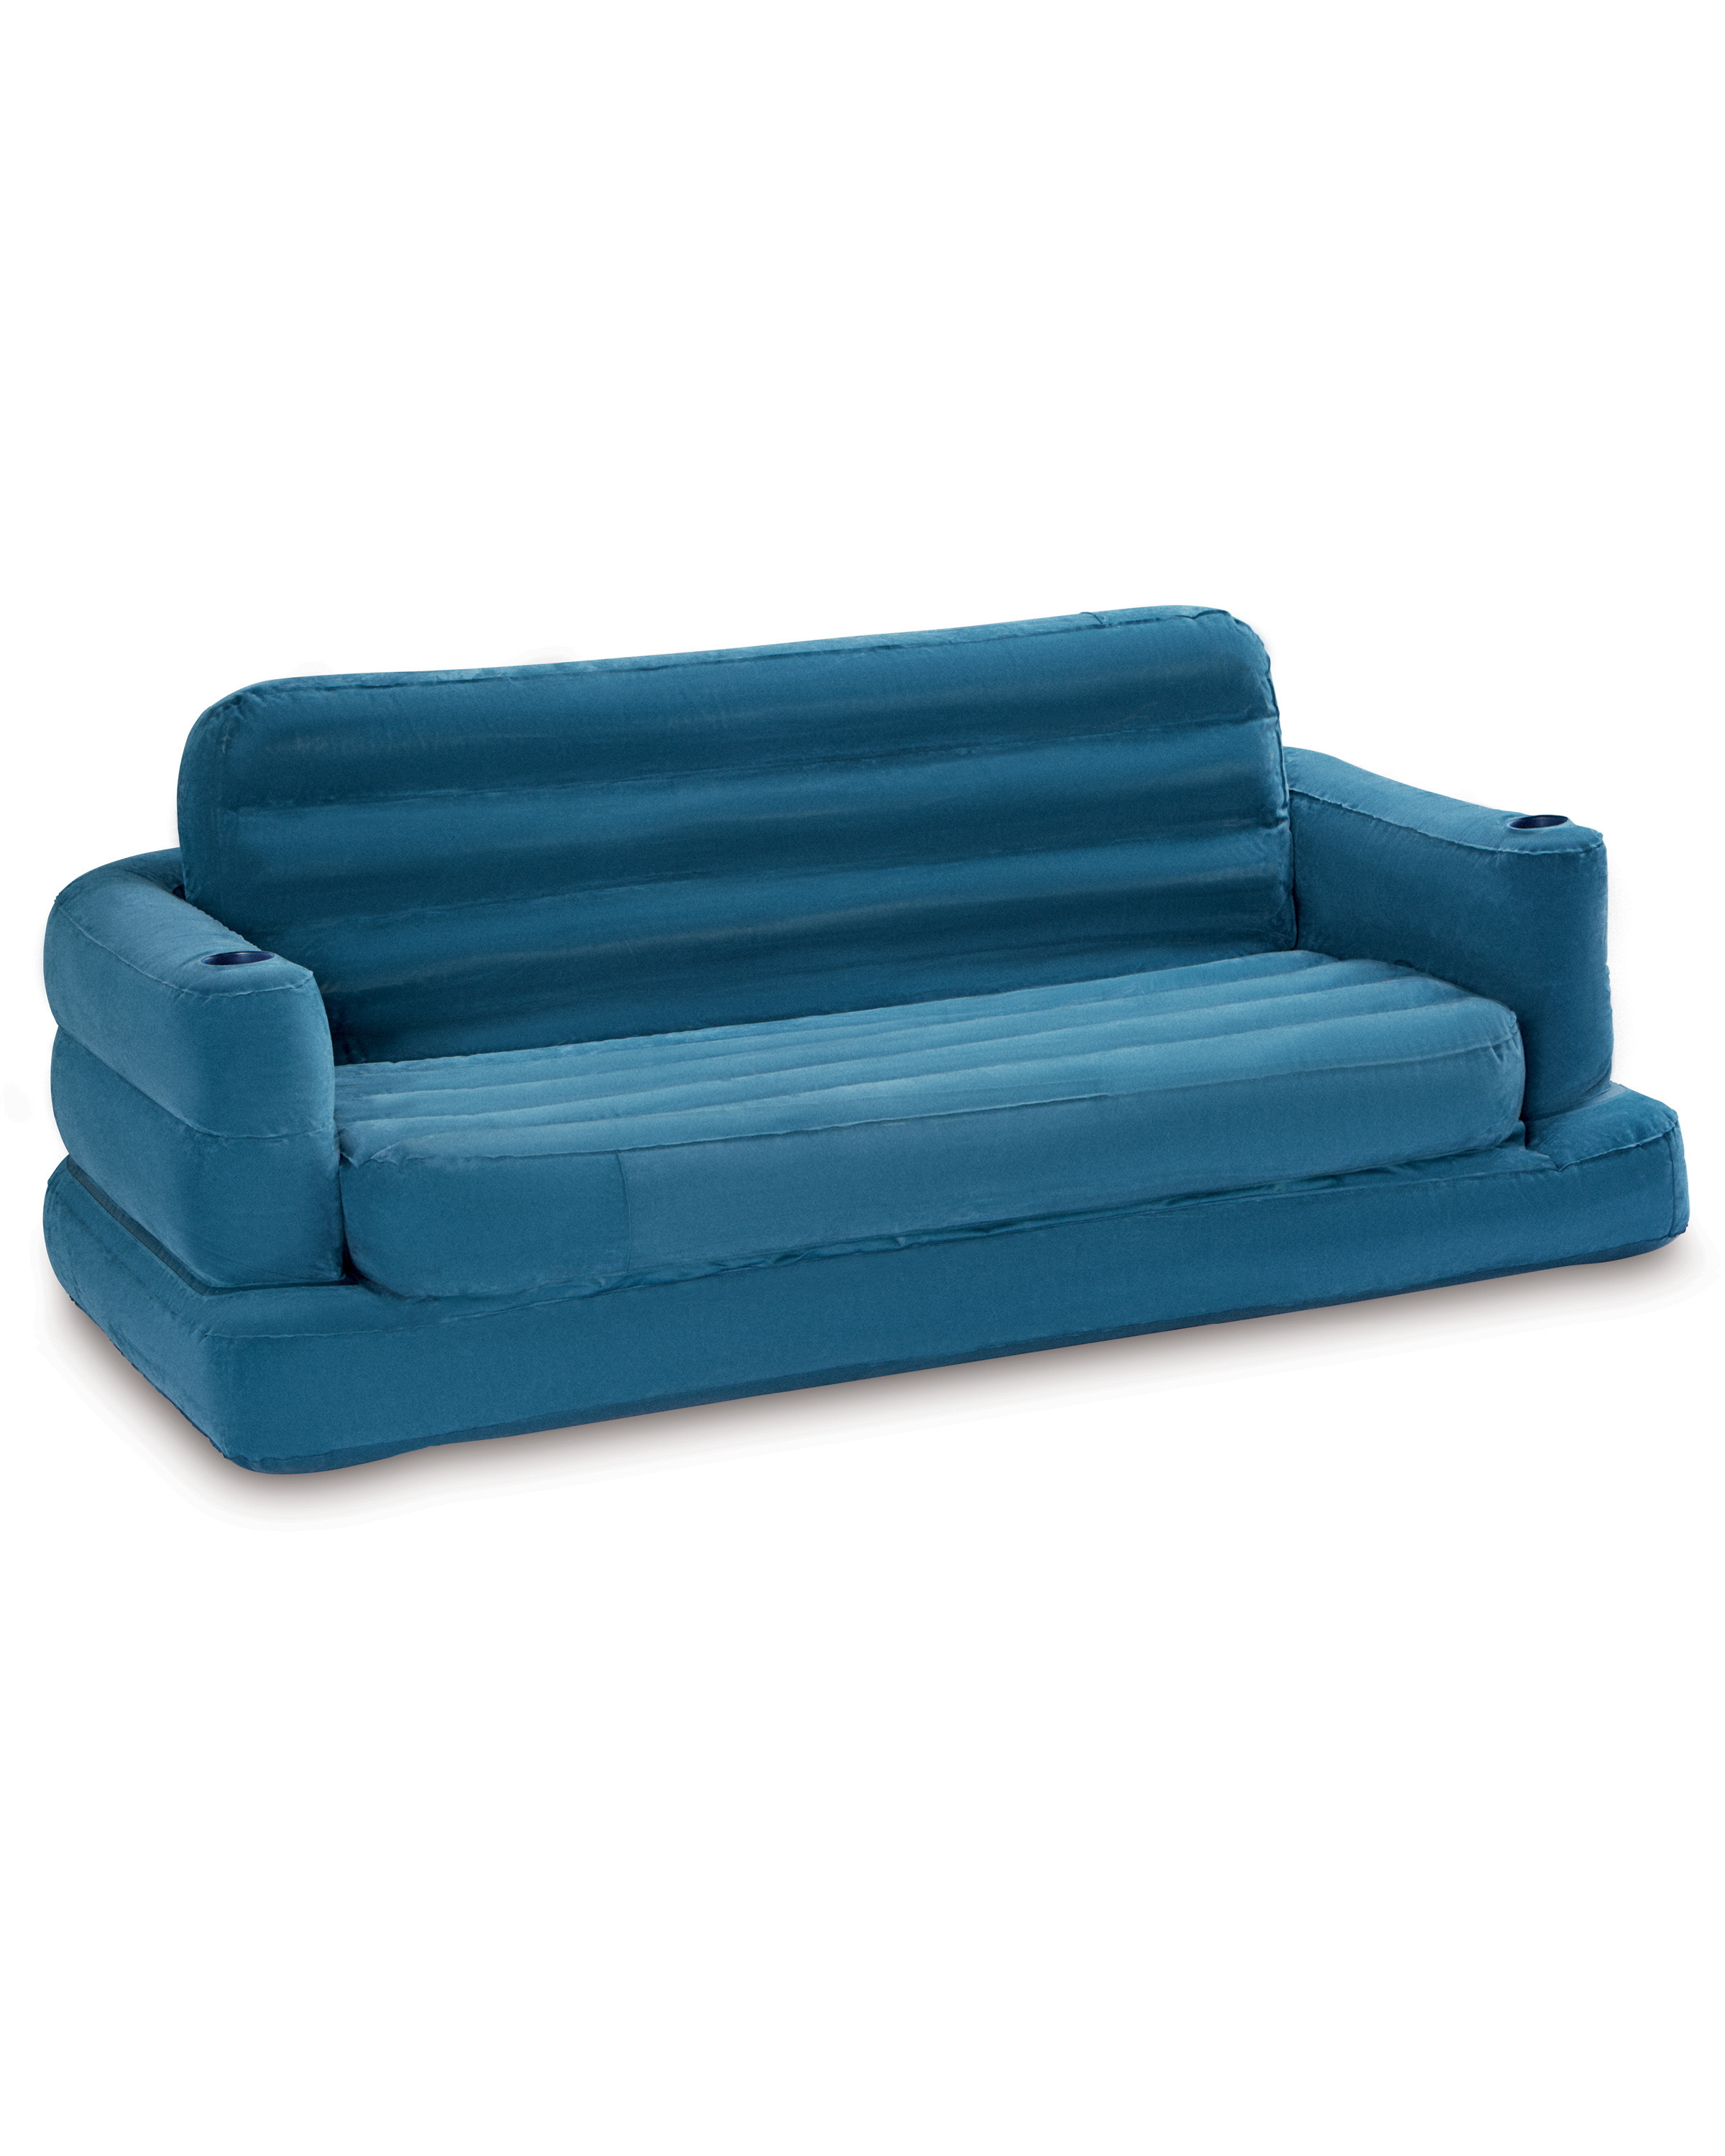 Incredible Inflatable Pull Out Sofa Home Interior And Landscaping Pimpapssignezvosmurscom